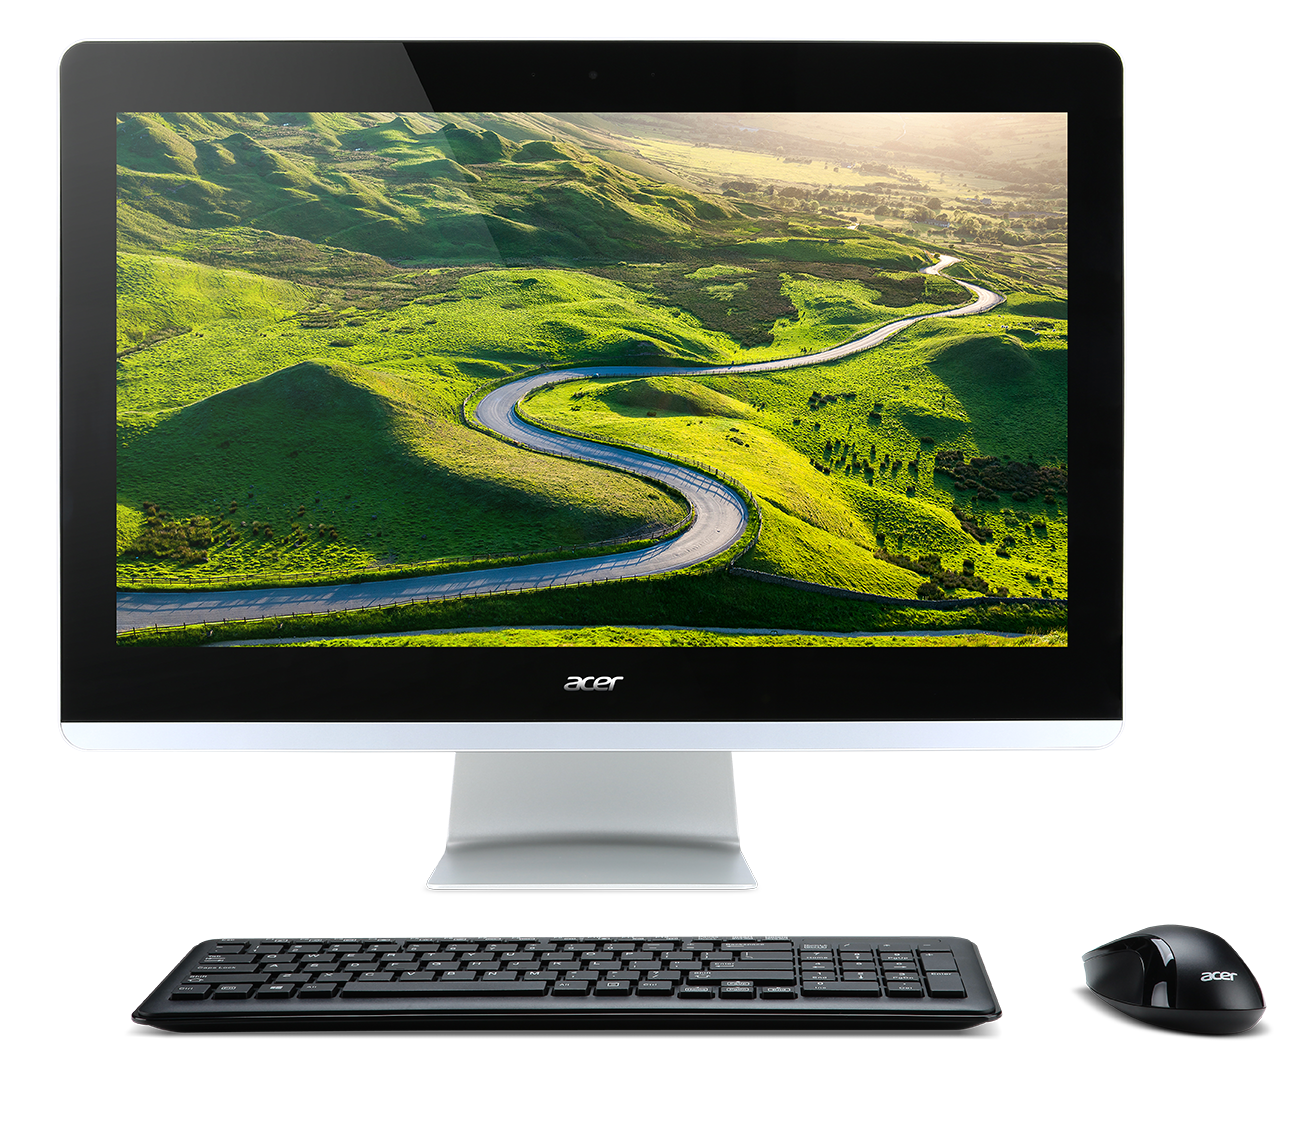 "Acer Aspire Z3-715 ALL-IN-ONE 23,8"" Touch FHD IPS LED/i3 7100T/4GB/1TB/DVDRW/USB kybd & mouse/repro/webcam/Linux"